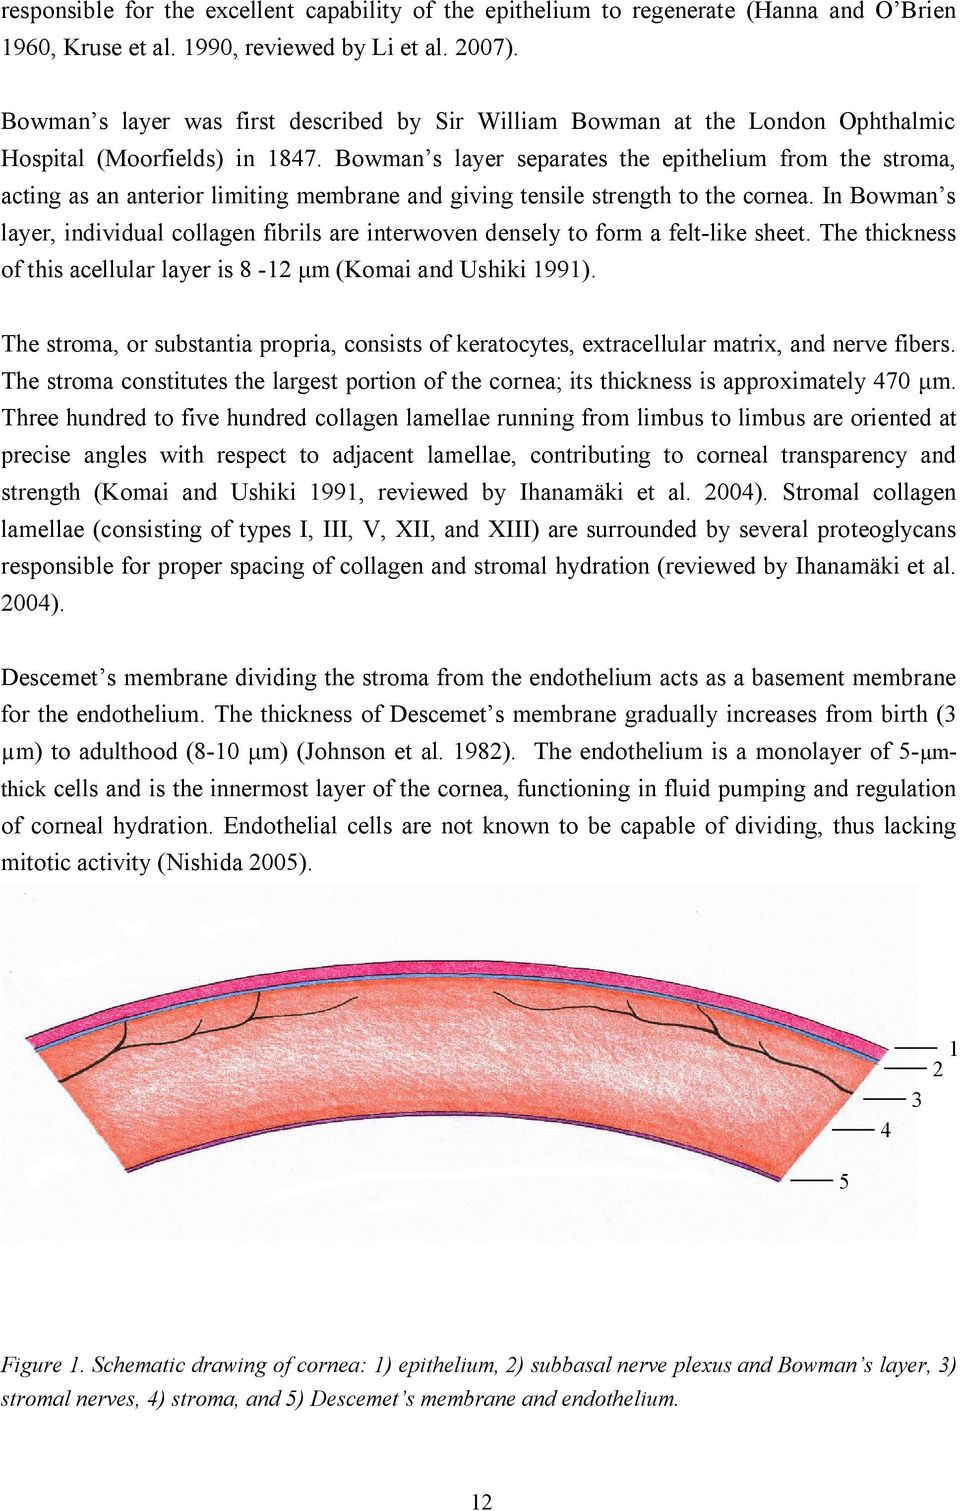 Bowman s layer separates the epithelium from the stroma, acting as an anterior limiting membrane and giving tensile strength to the cornea.